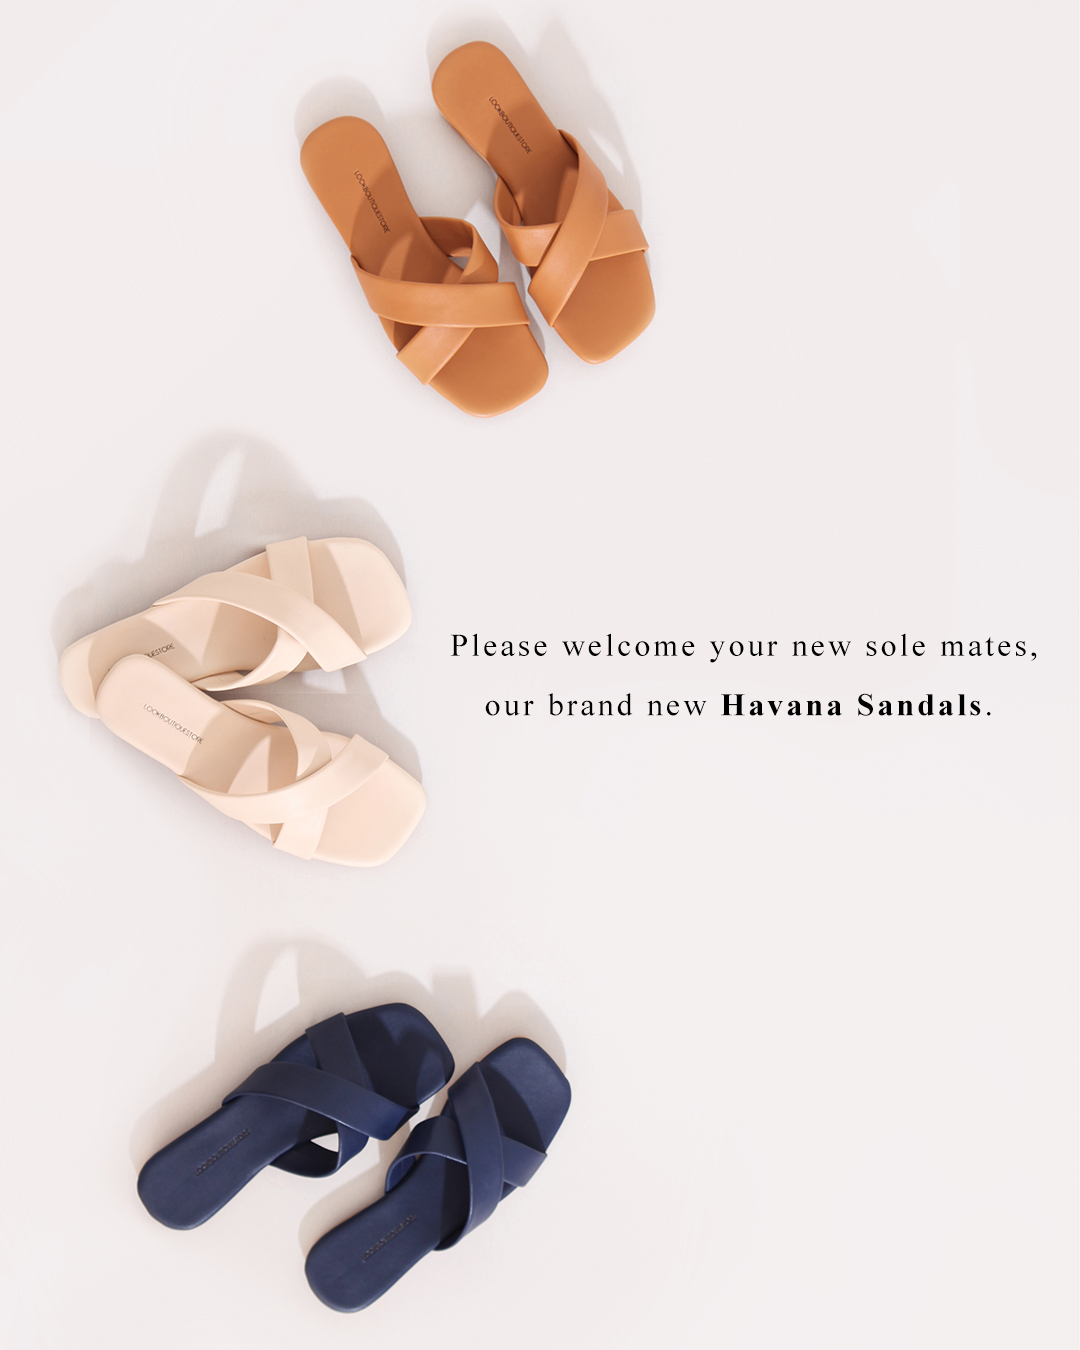 LBS SHOES – HAVANA SANDALS